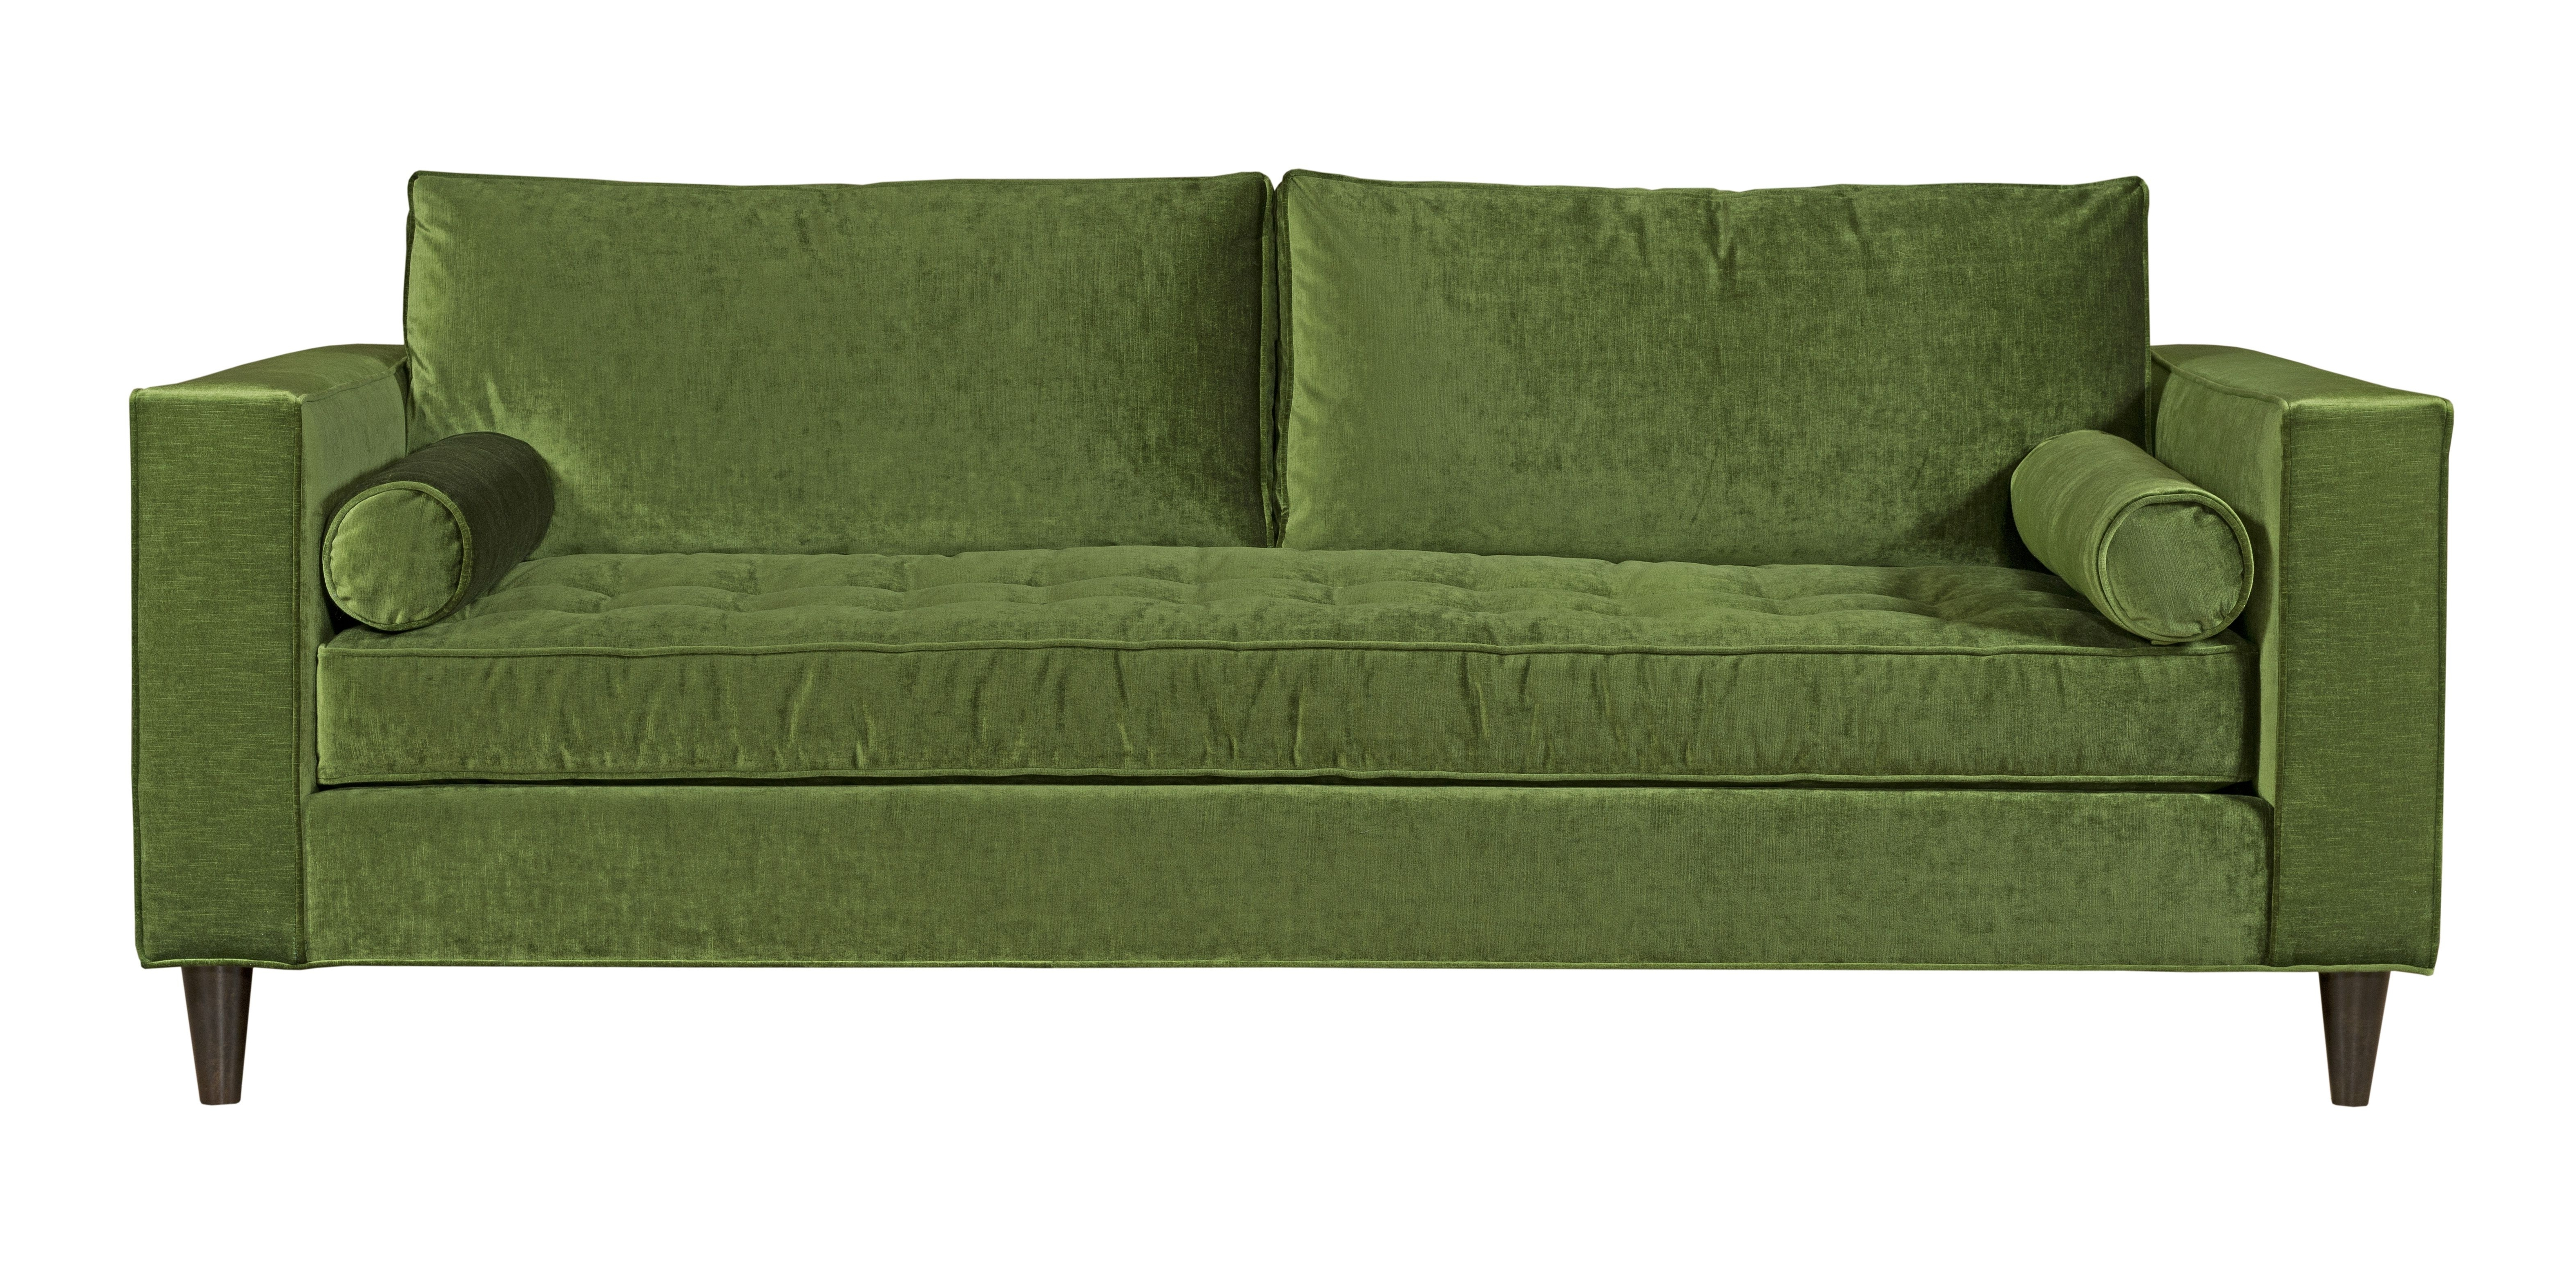 Apartment Sofas Intended For Preferred 16 Best Apartment Size Sofas – Couches For Small Apartments (View 7 of 20)